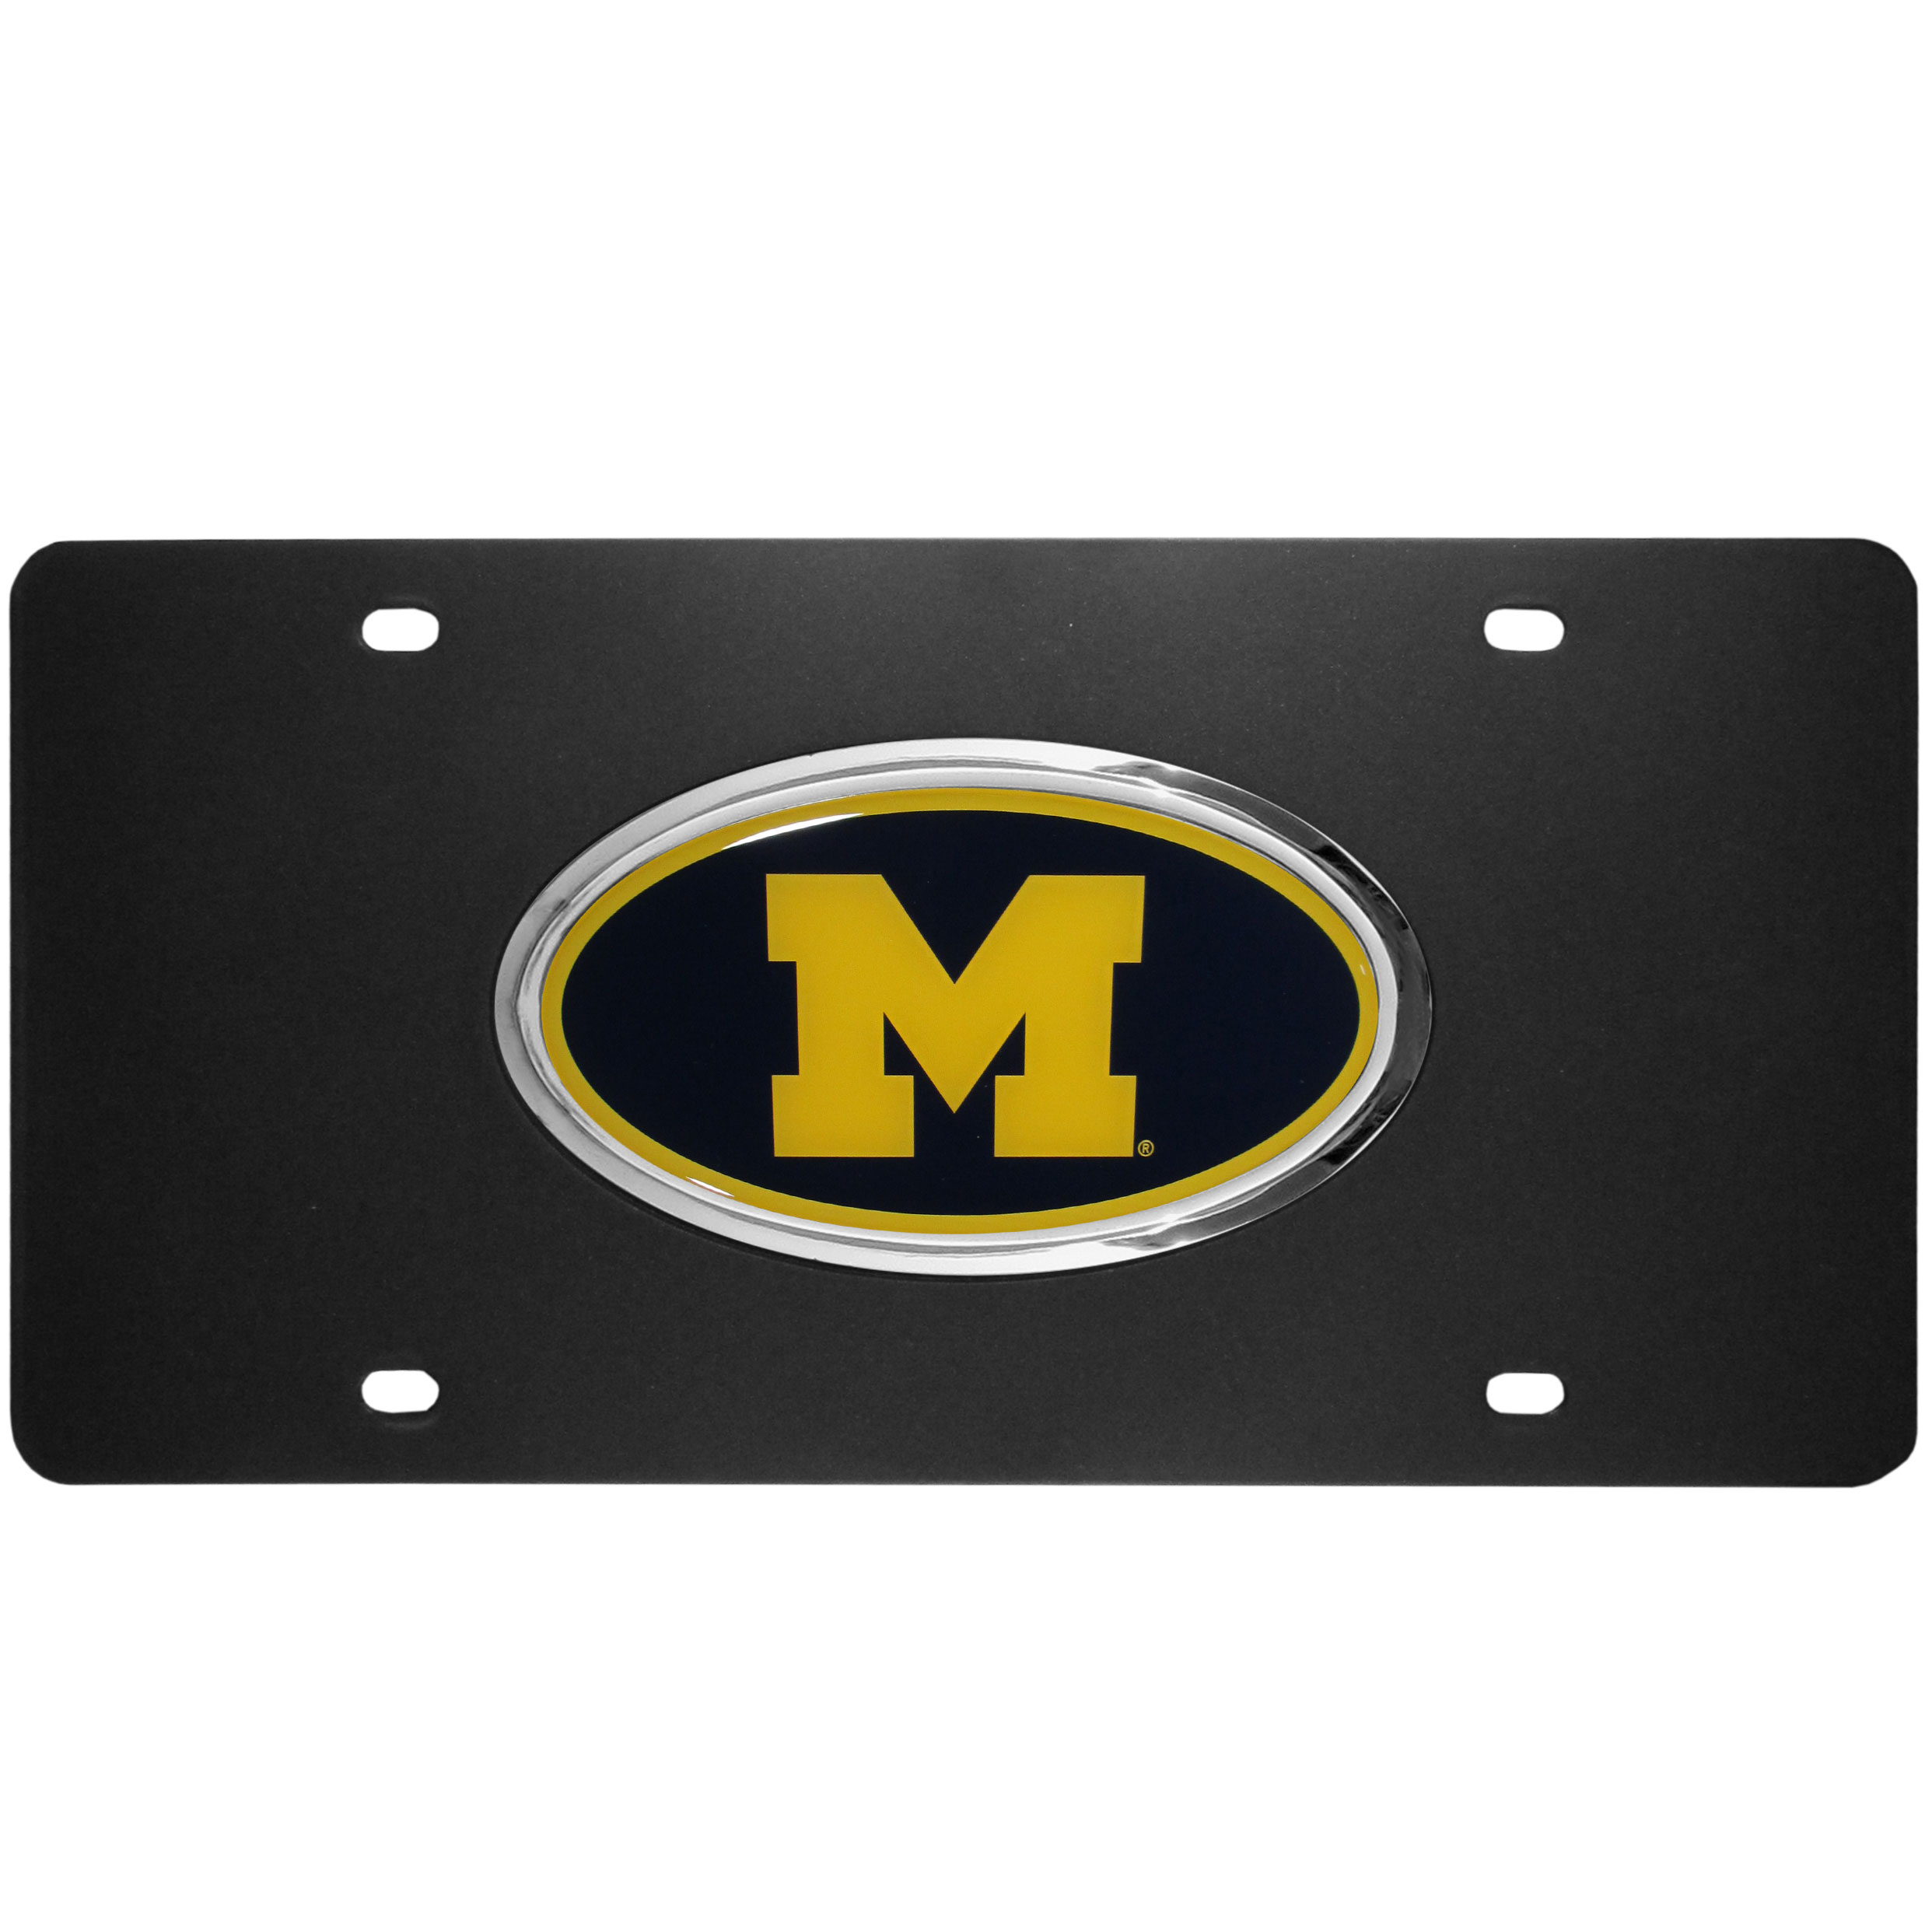 Michigan Wolverines Acrylic License Plate - Our Michigan Wolverines acrylic license plate is a step above the rest. It is made of thick, durable acrylic with a matte black finish and raised chrome saddle for the extra large team emblem.